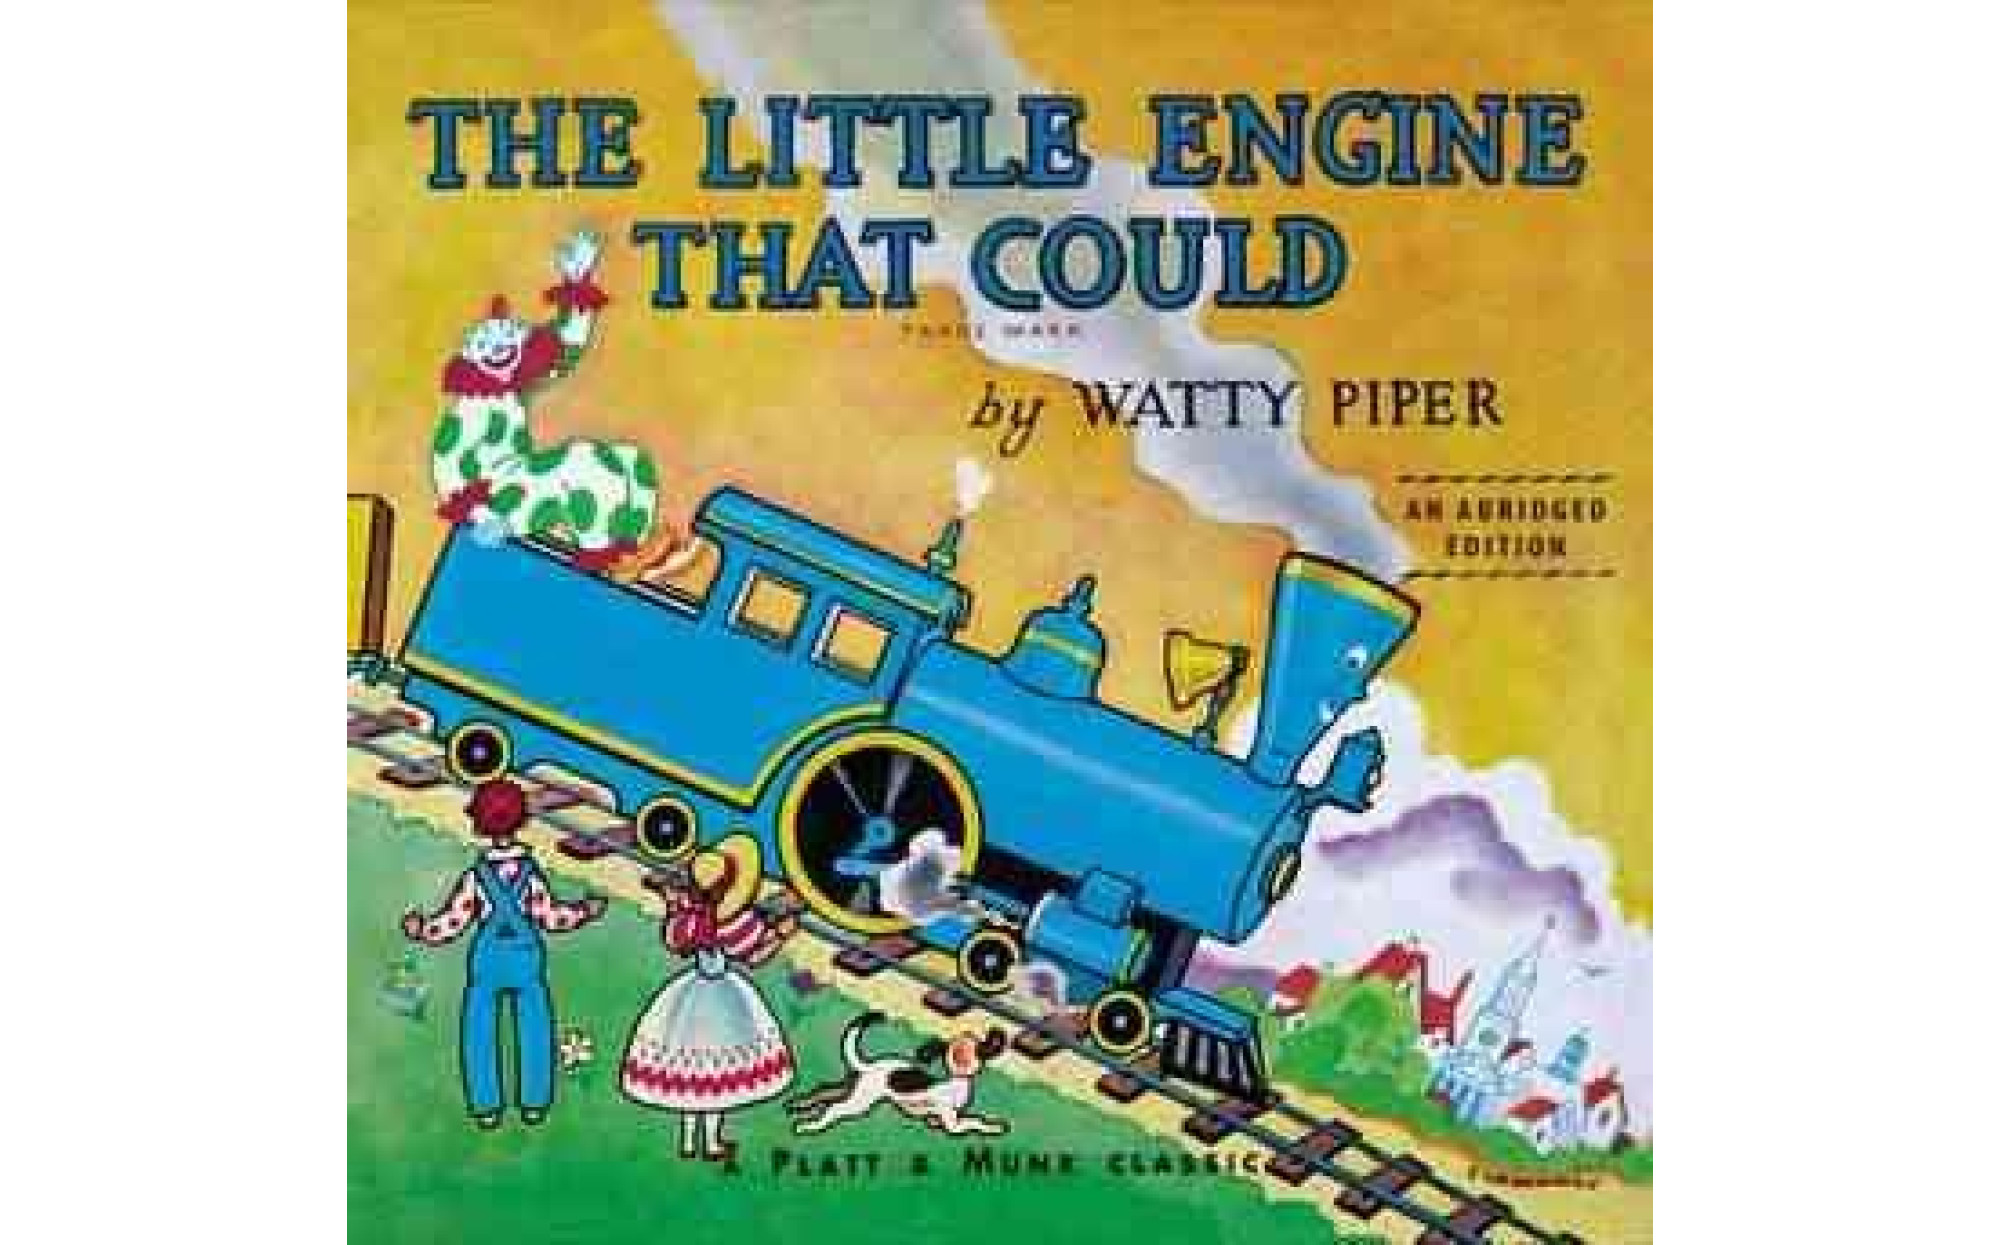 The Little Engine That Could Hardcover Books